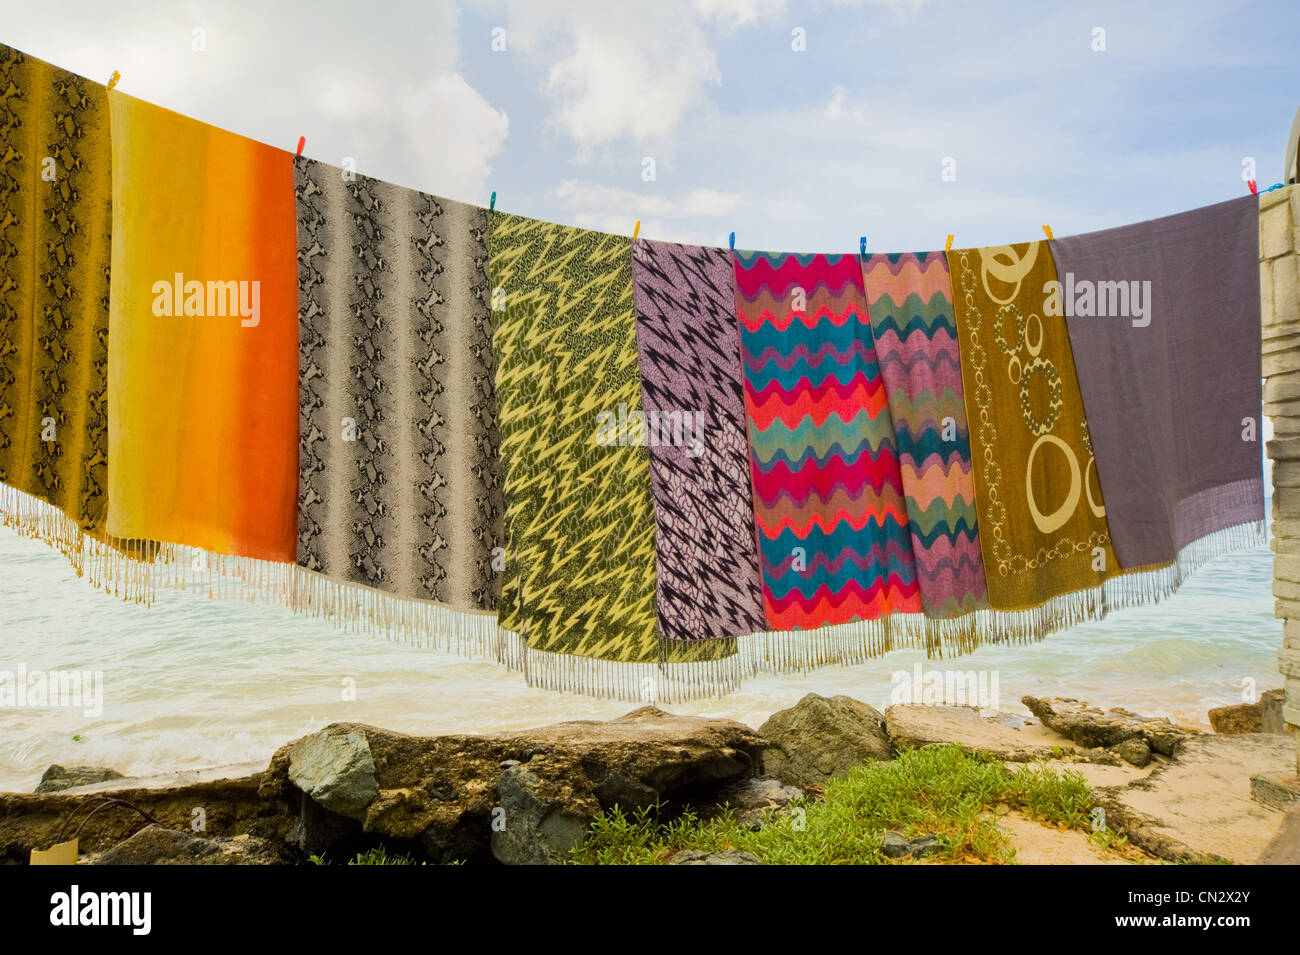 Blankets on clothesline, Pigeon Point, Tobago - Stock Image